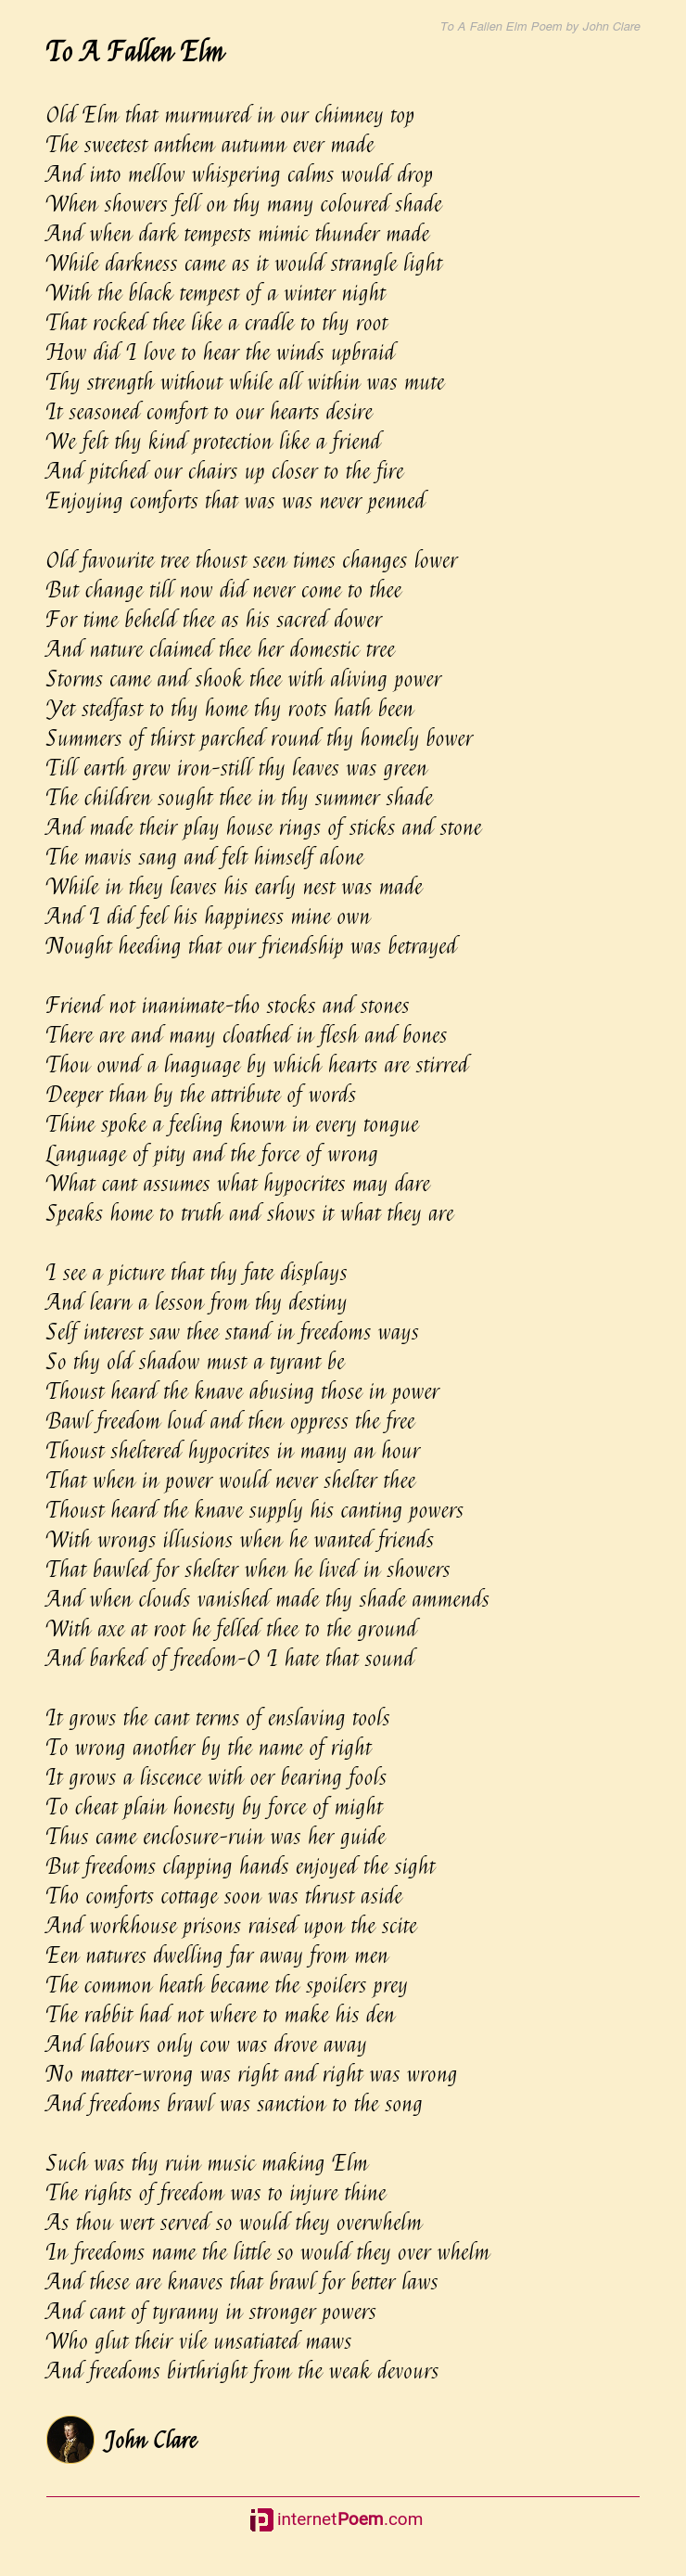 To A Fallen Elm Poem by John Clare